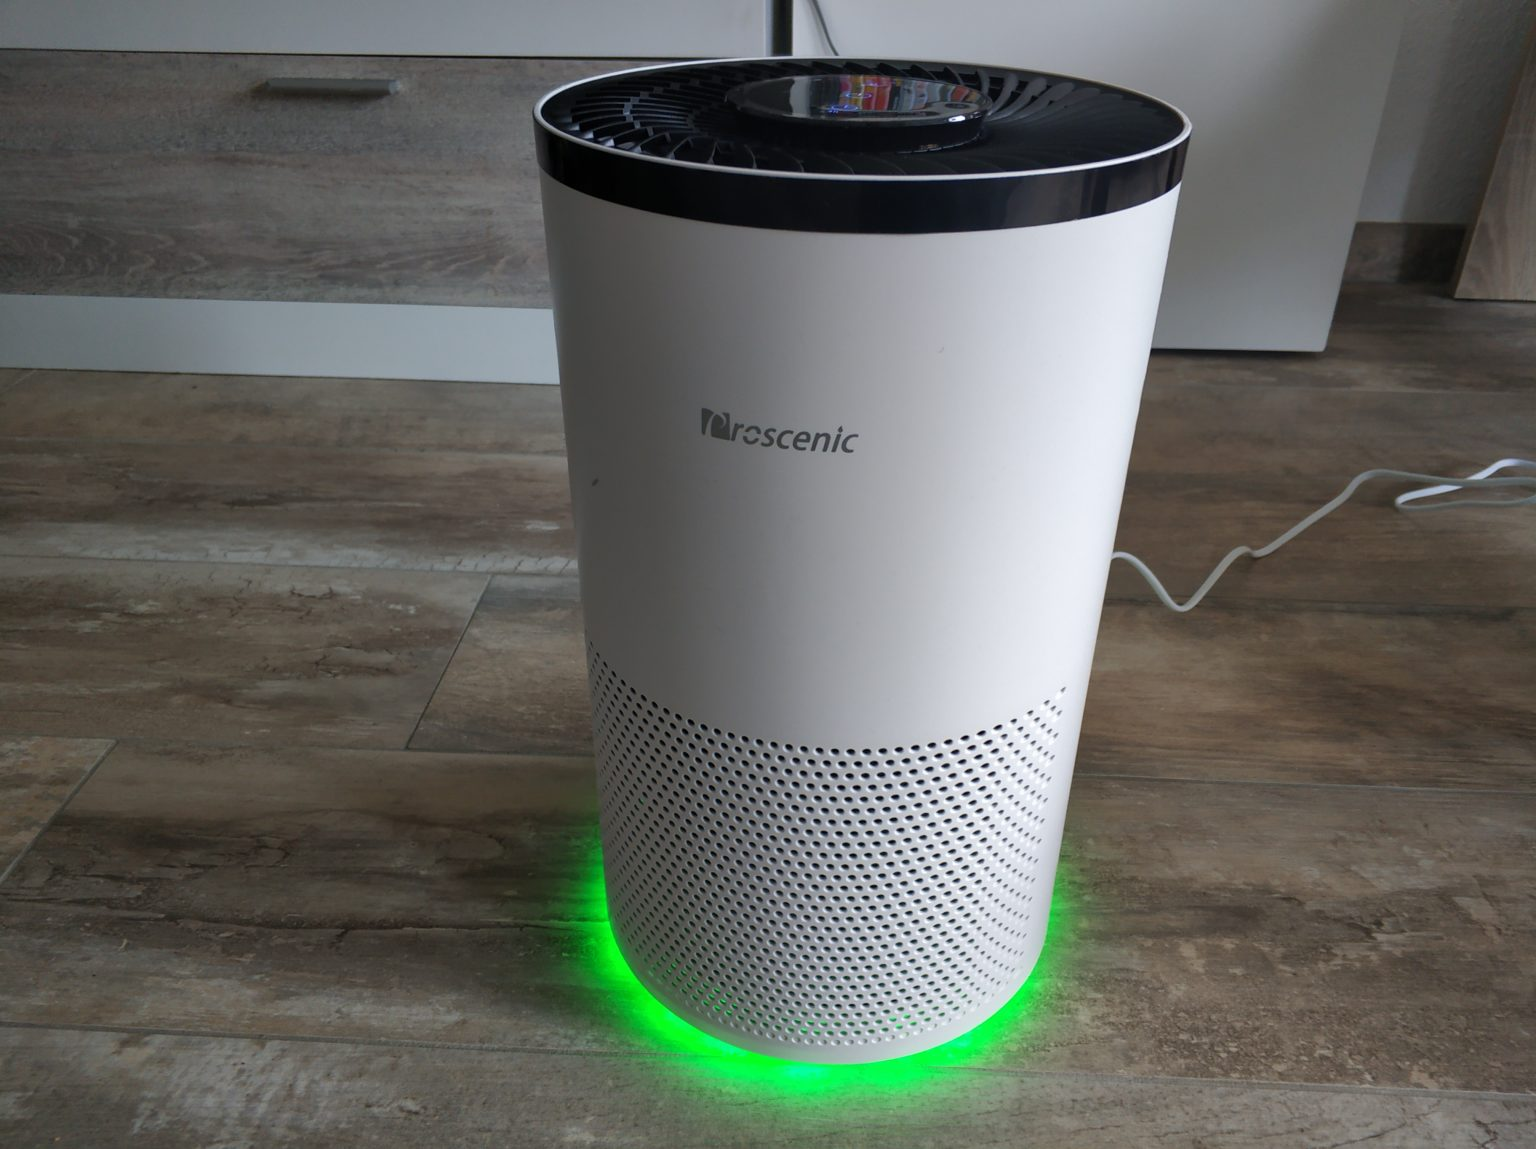 Proscenic A8 air purifier review – for a better air in the home